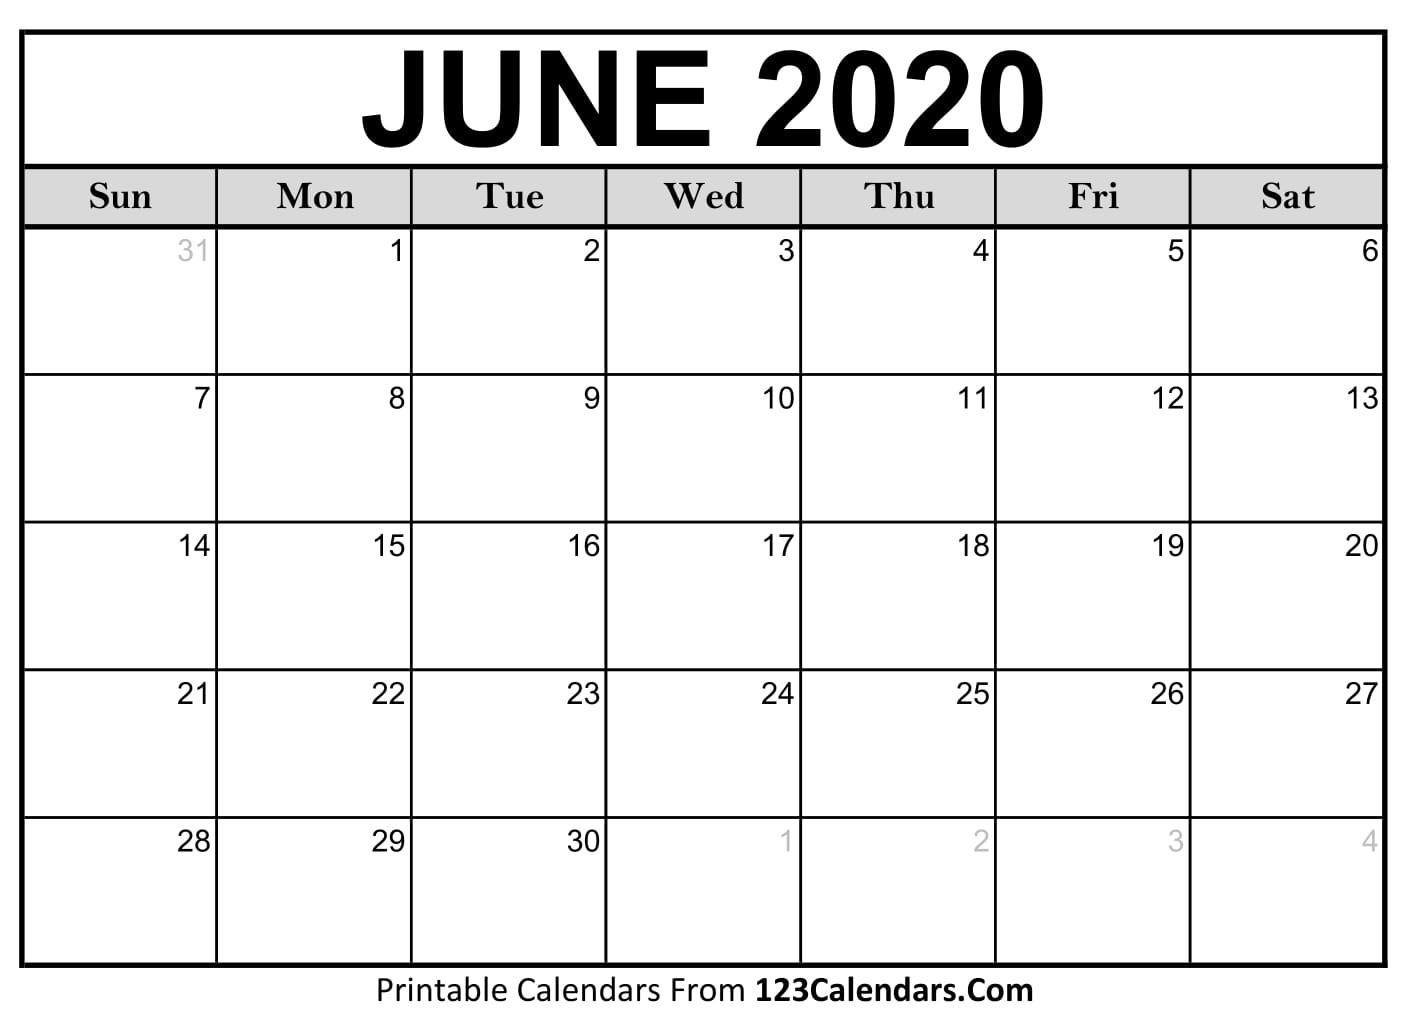 image relating to Printable 2020 Calendar referred to as June 2020 Printable Calendar